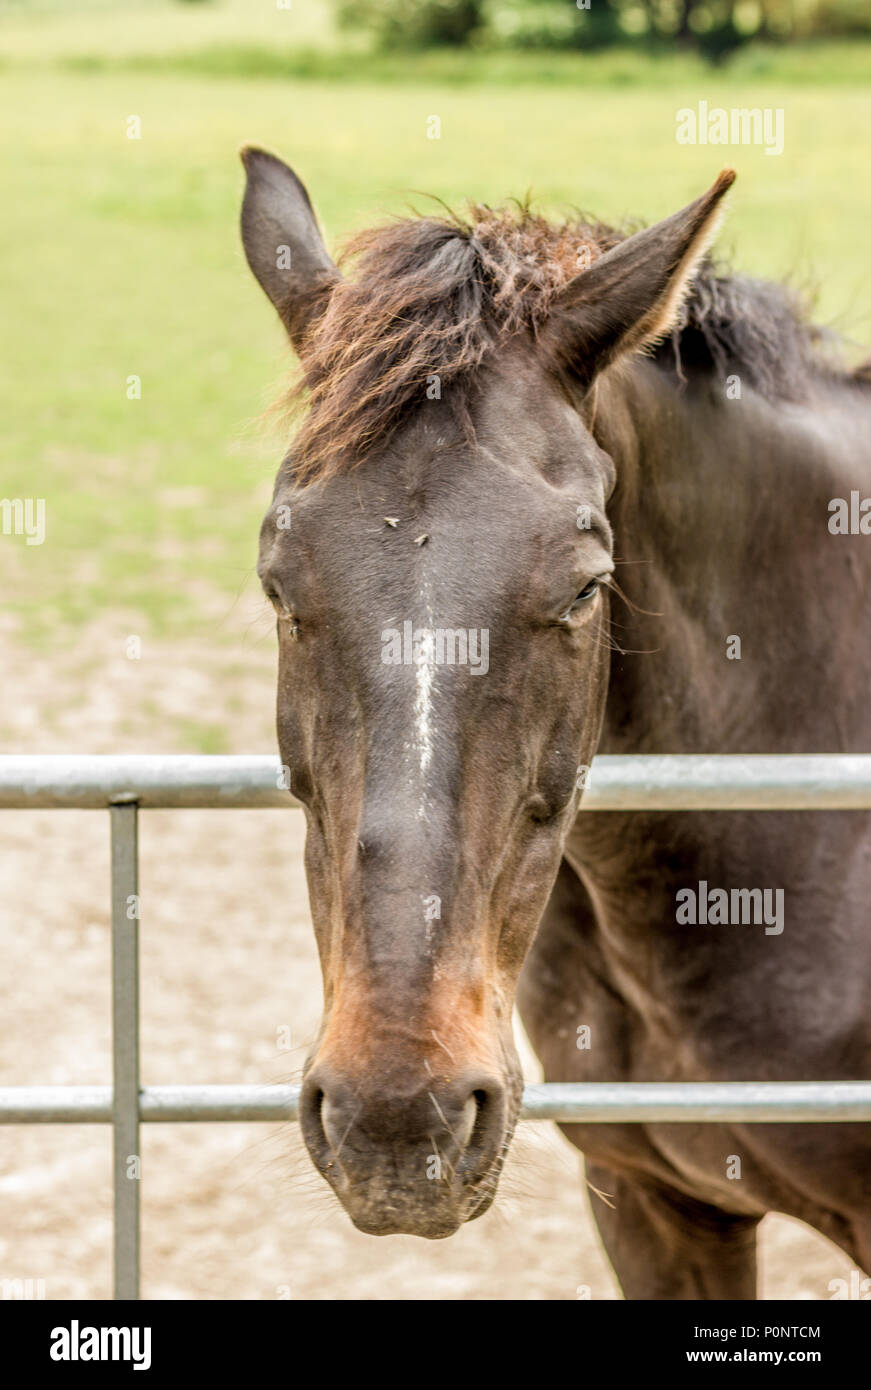 Horses leaning over a paddock gate - Stock Image